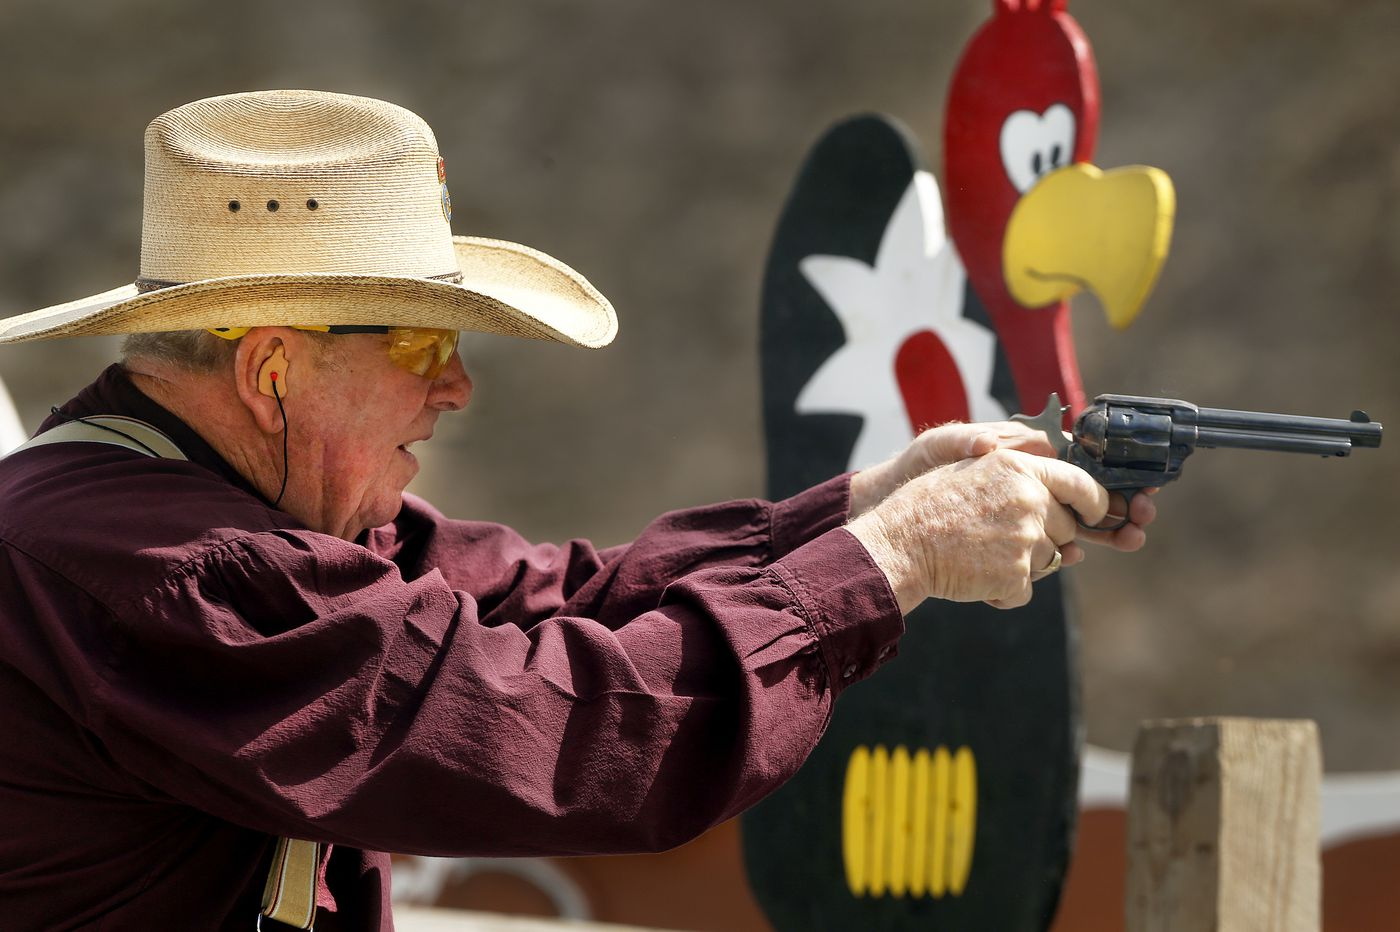 Pennsylvania's wild bunch spend weekends shooting guns in cowboy garb